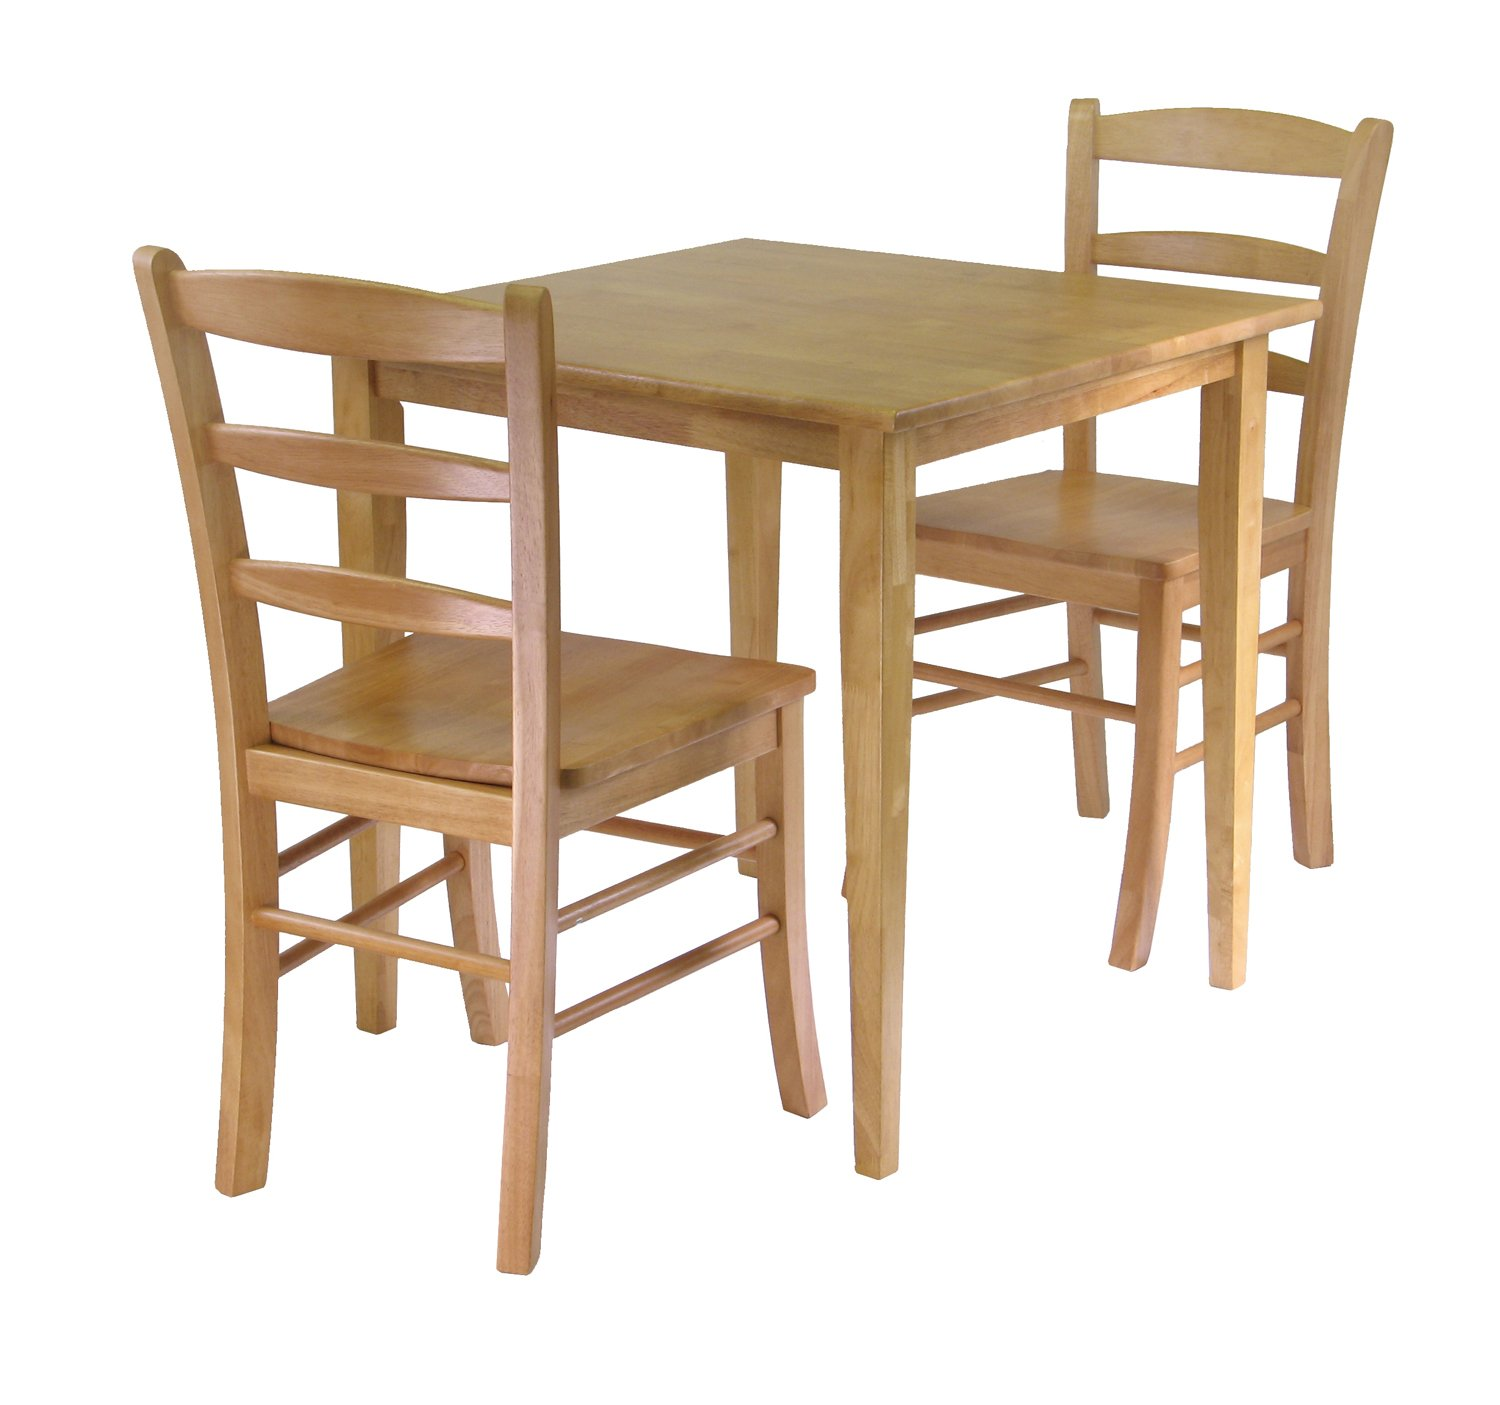 3-Piece Wood Dining Set